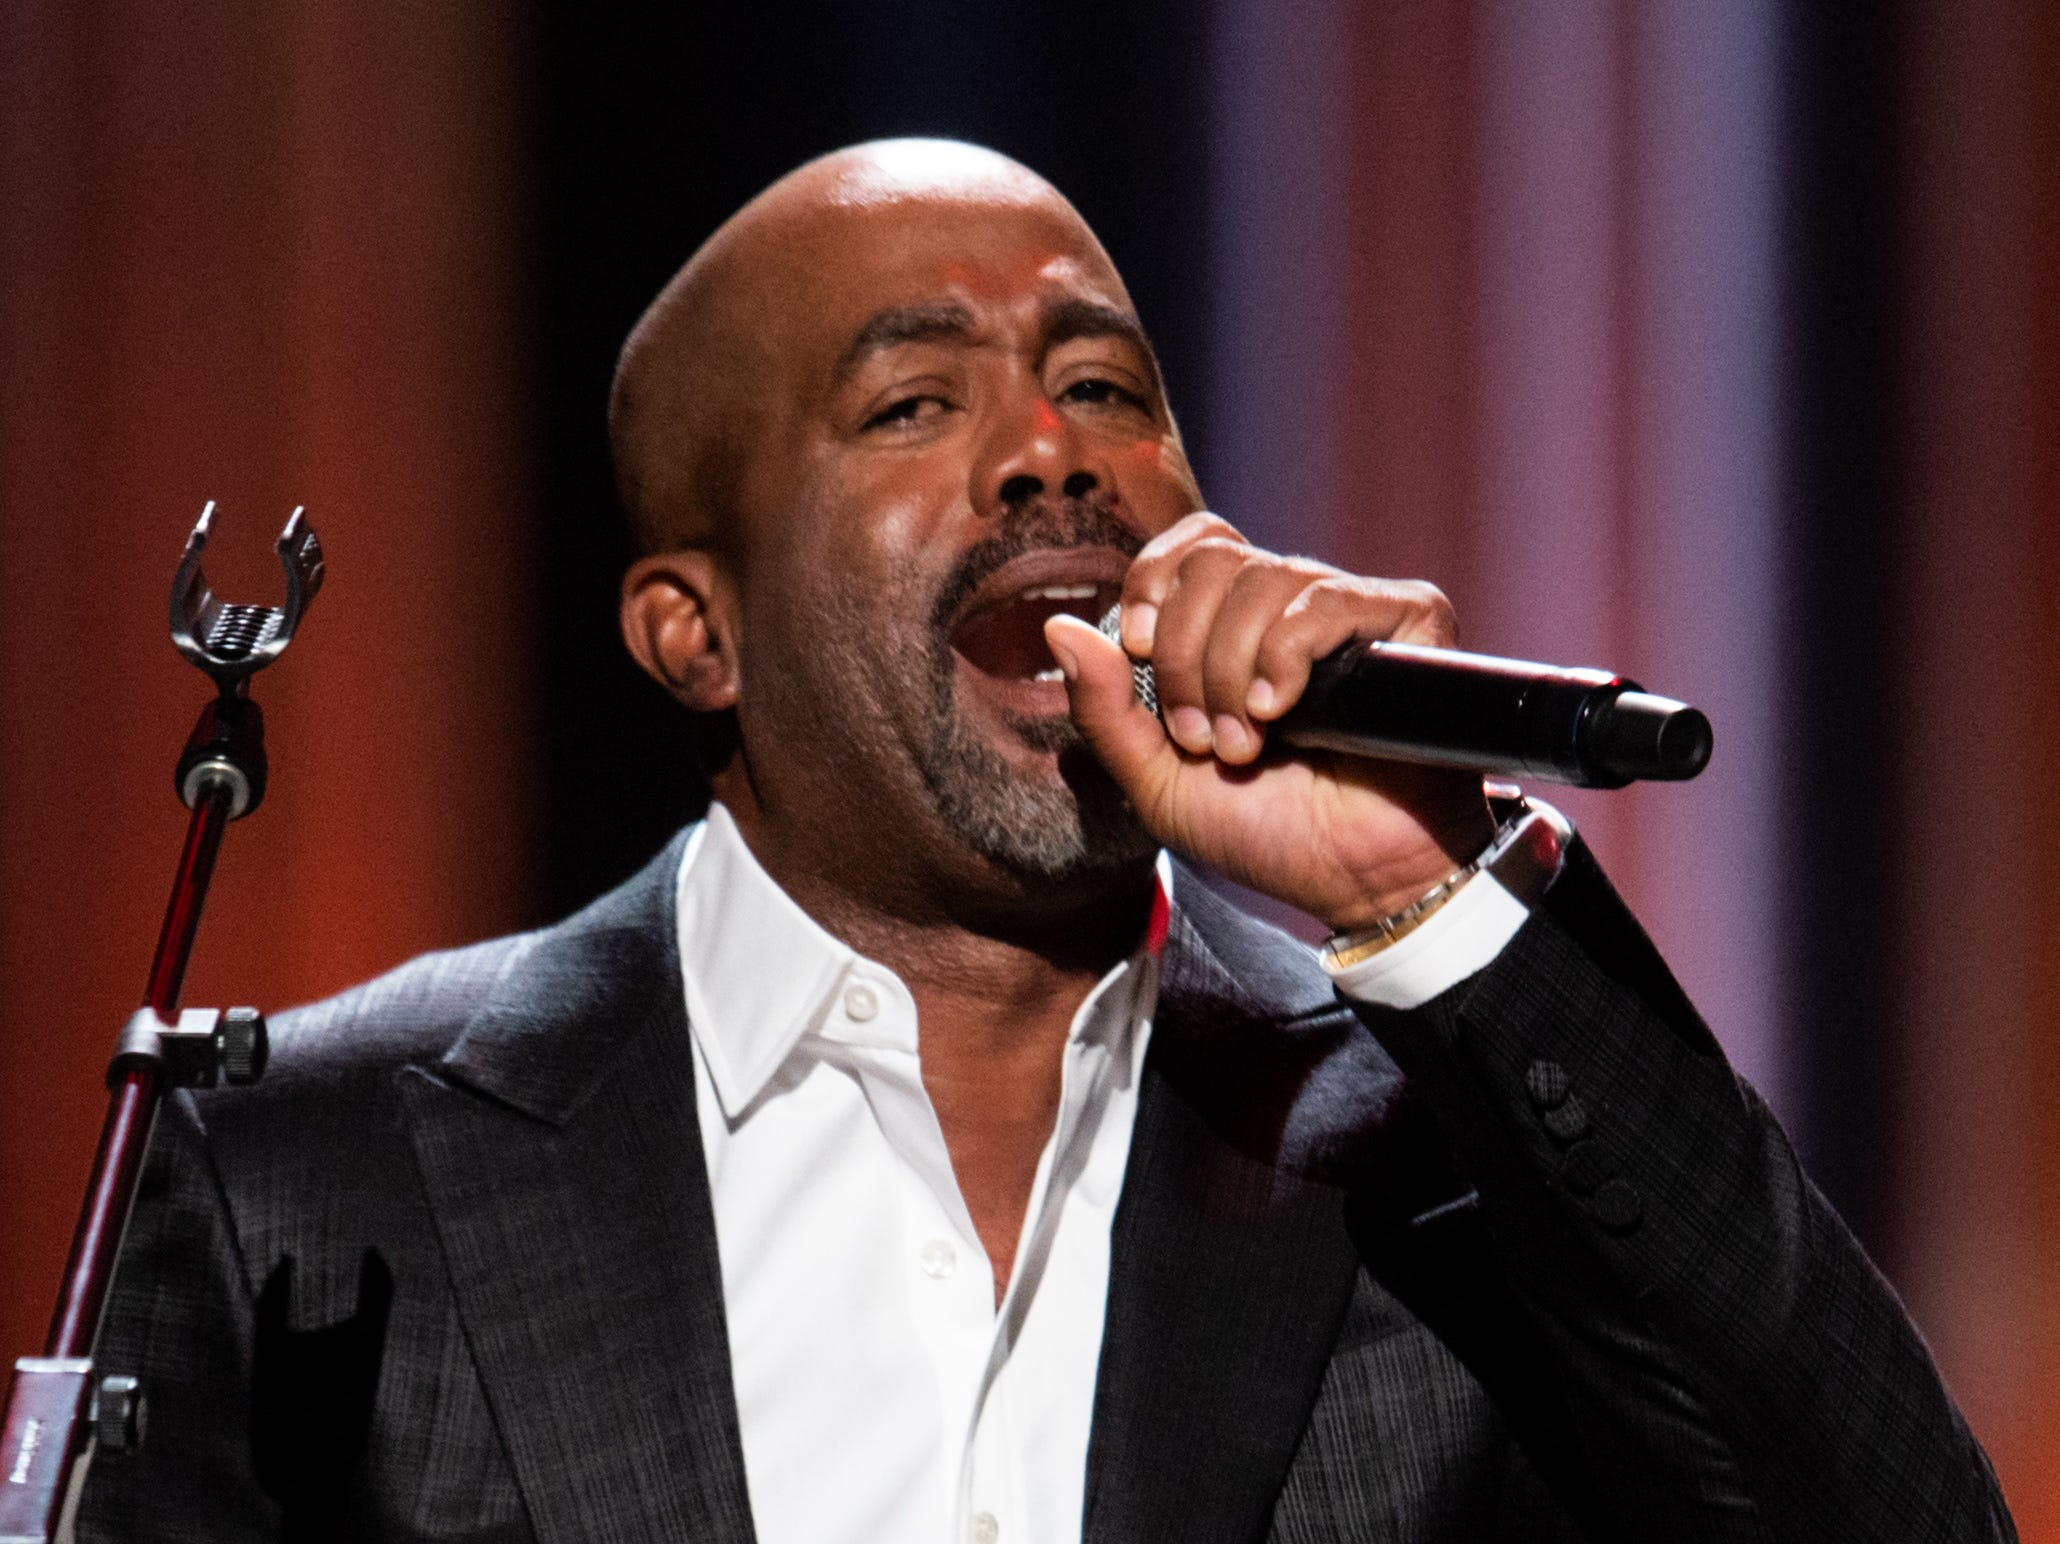 Darius Rucker performs during the An Opry Salute to Ray Charles concert at The Grand Ole Opry in Nashville, Tenn., Monday, Oct. 8, 2018.